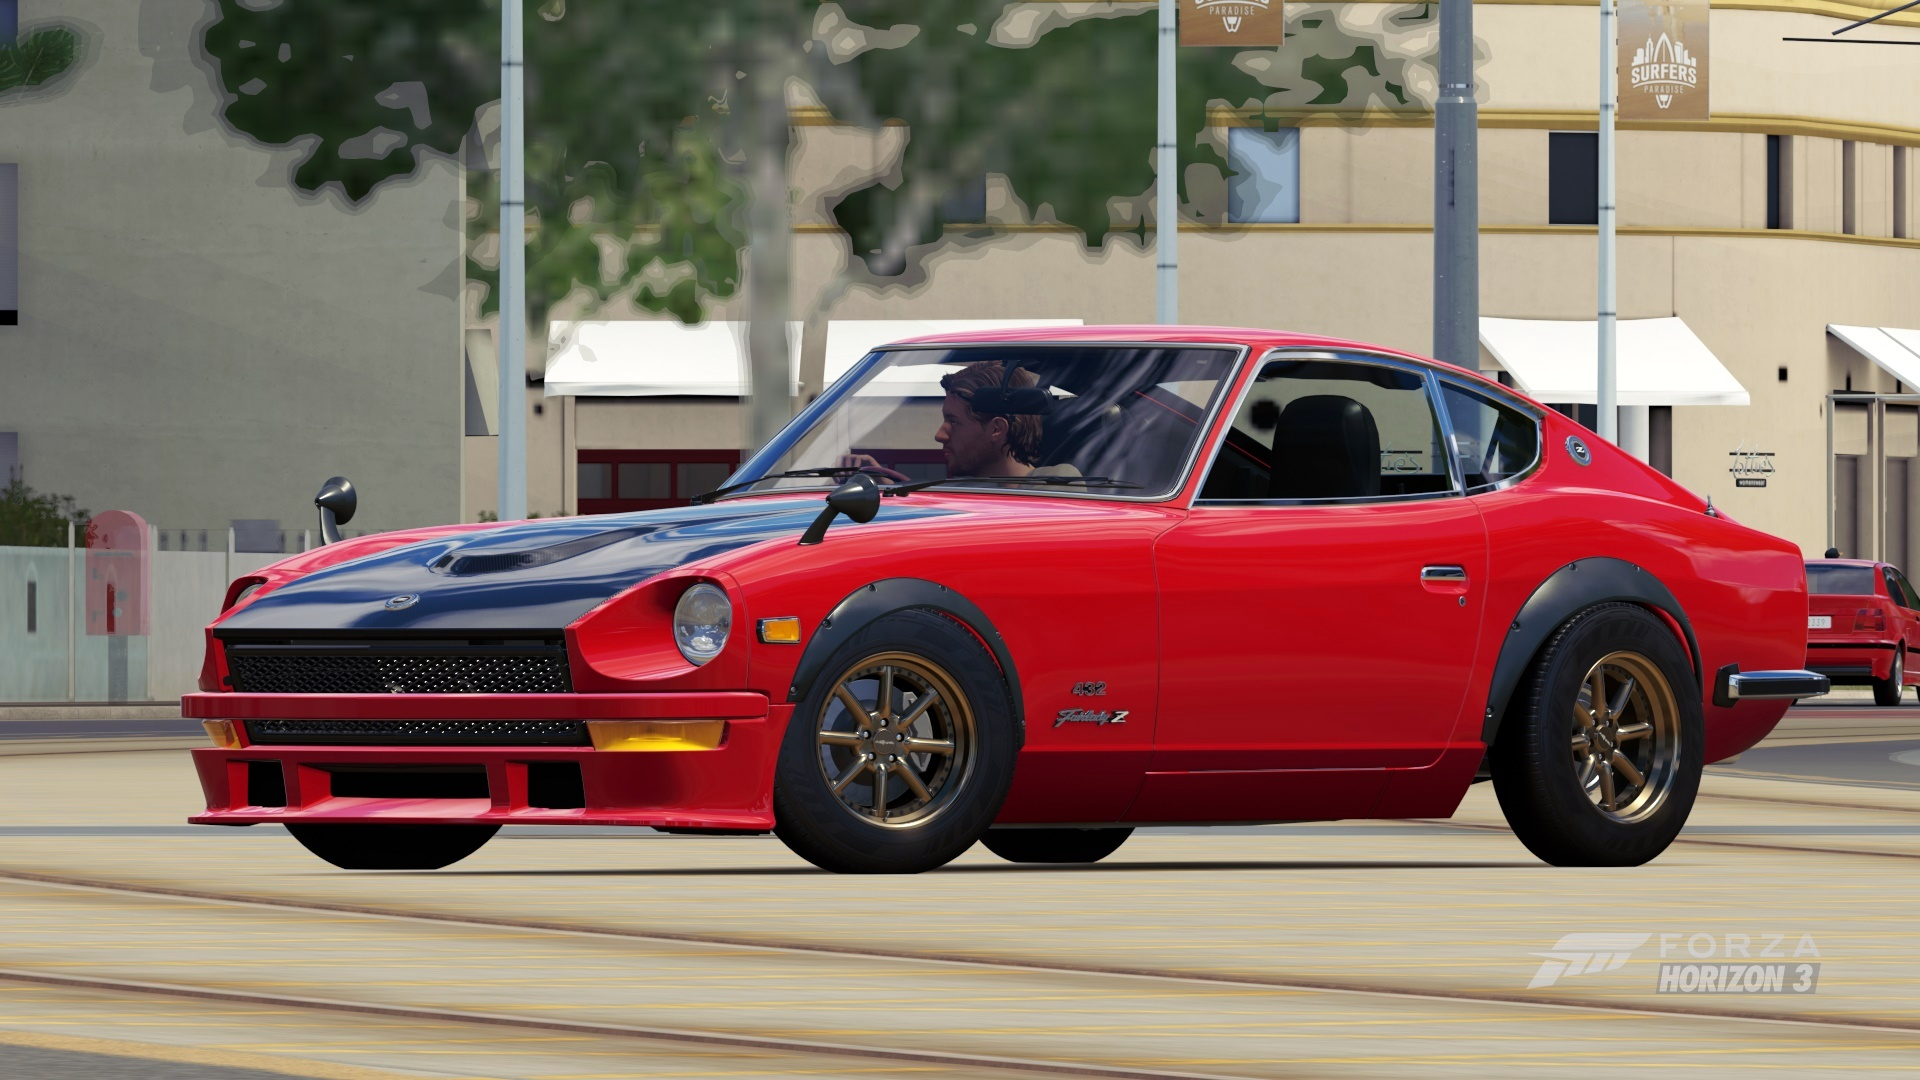 Fh3 Discount Devil Z By 98suprafurry On Deviantart